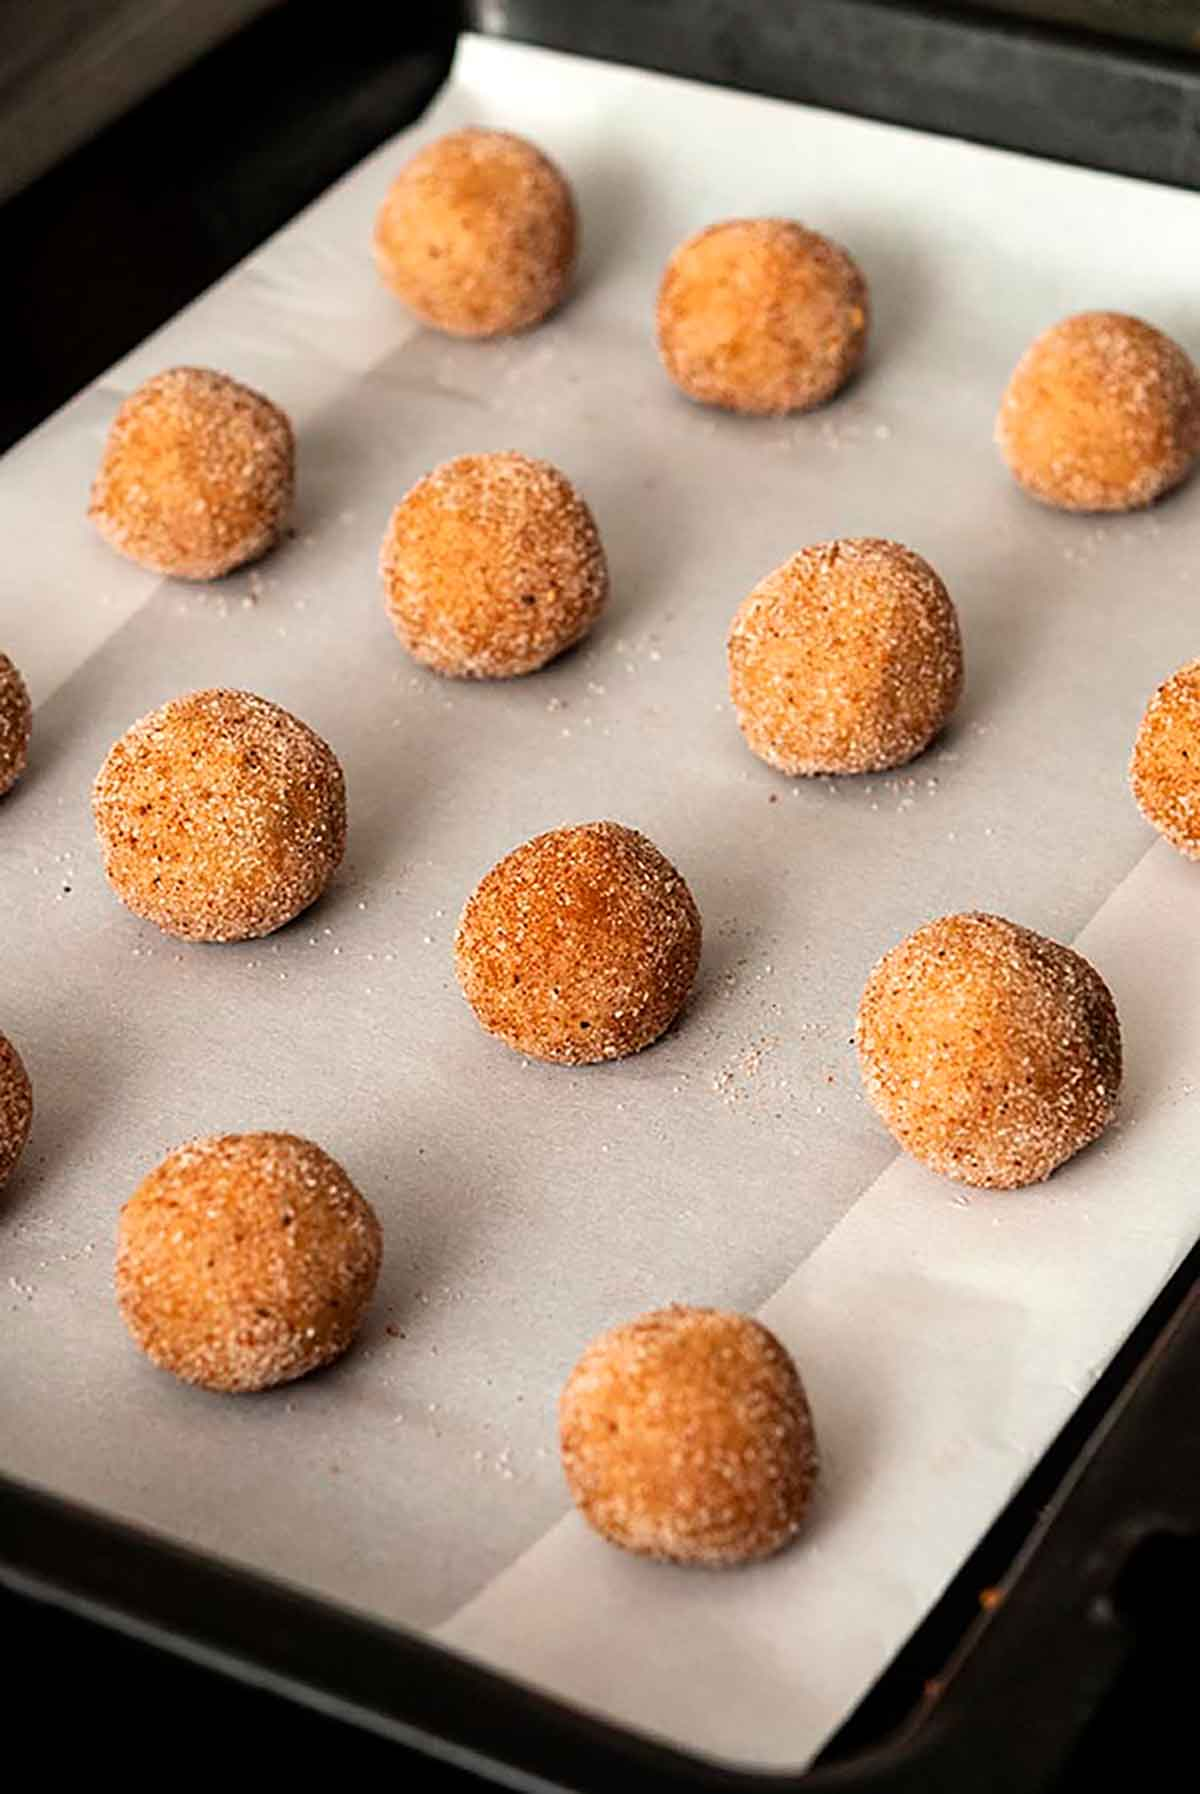 16 balls of sugar-coated dough on a parchment-lined baking pan.